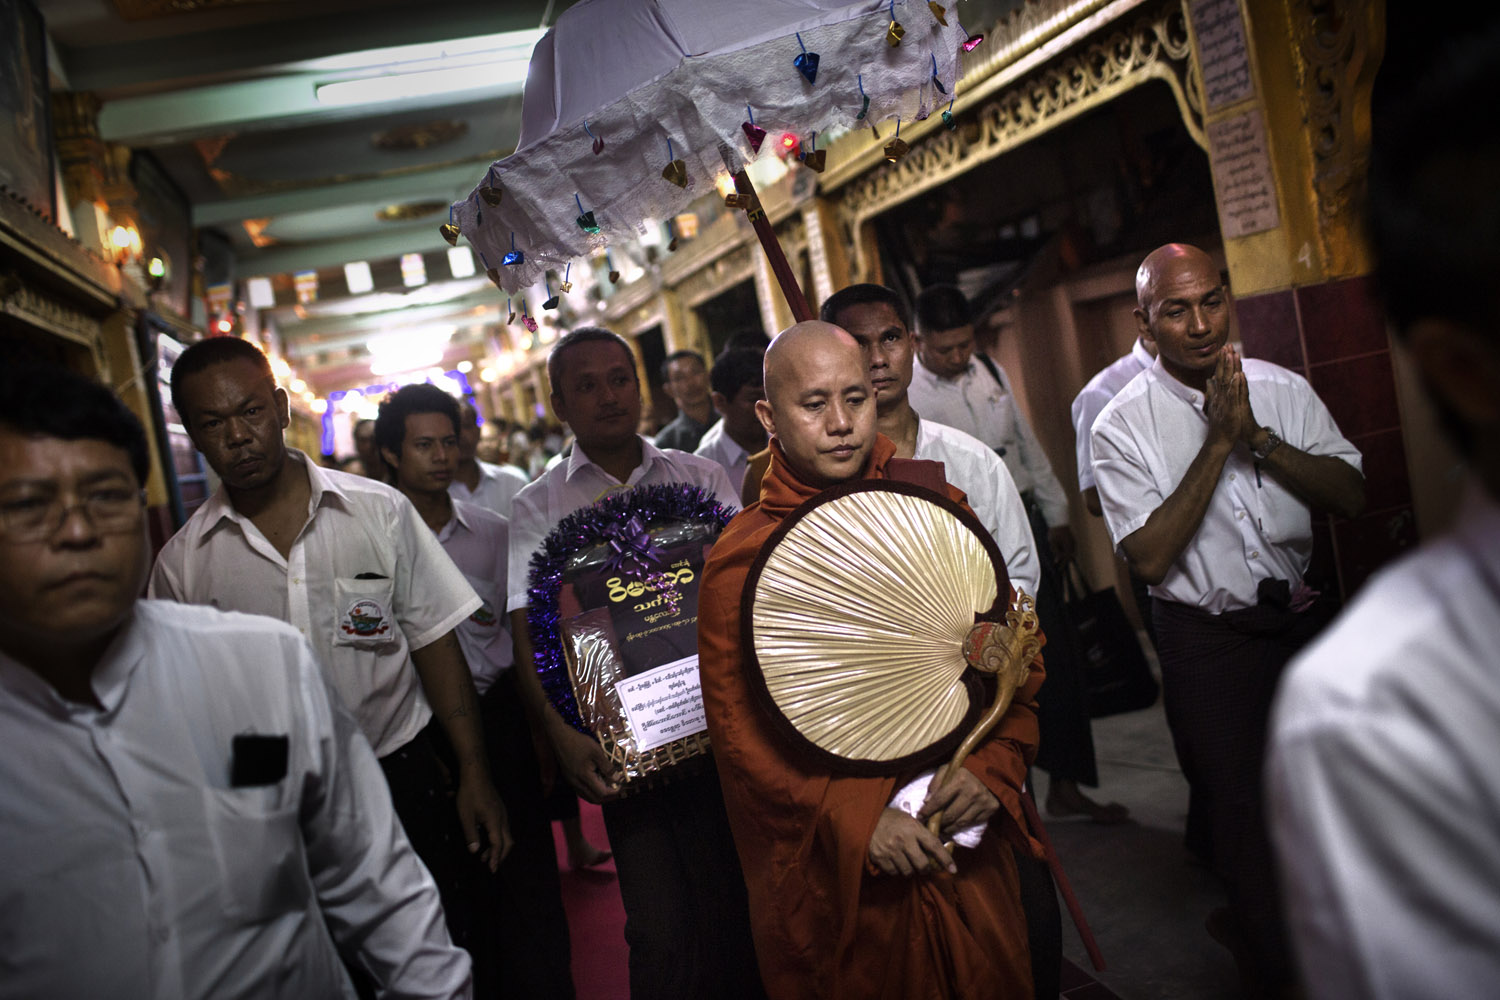 The following photographs were taken in May and June 2013.Wirathu, the spiritual leader of the 969 Buddhist Nationalist movement, and his entourage leave after giving a sermon at a monastery in Mandalay, Burma.